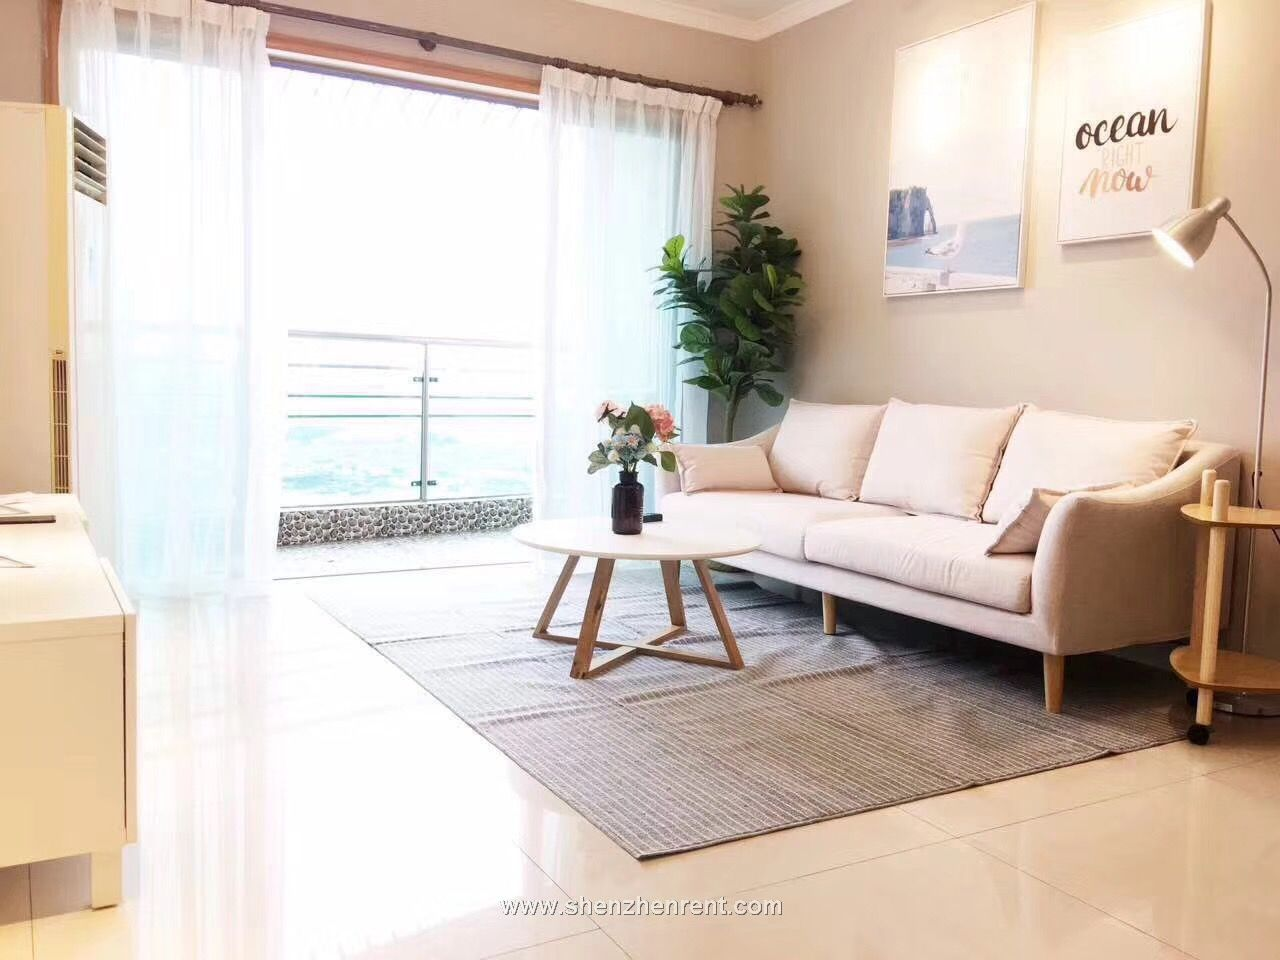 Newly updated 2 bedrooms apartment in shekou for rent